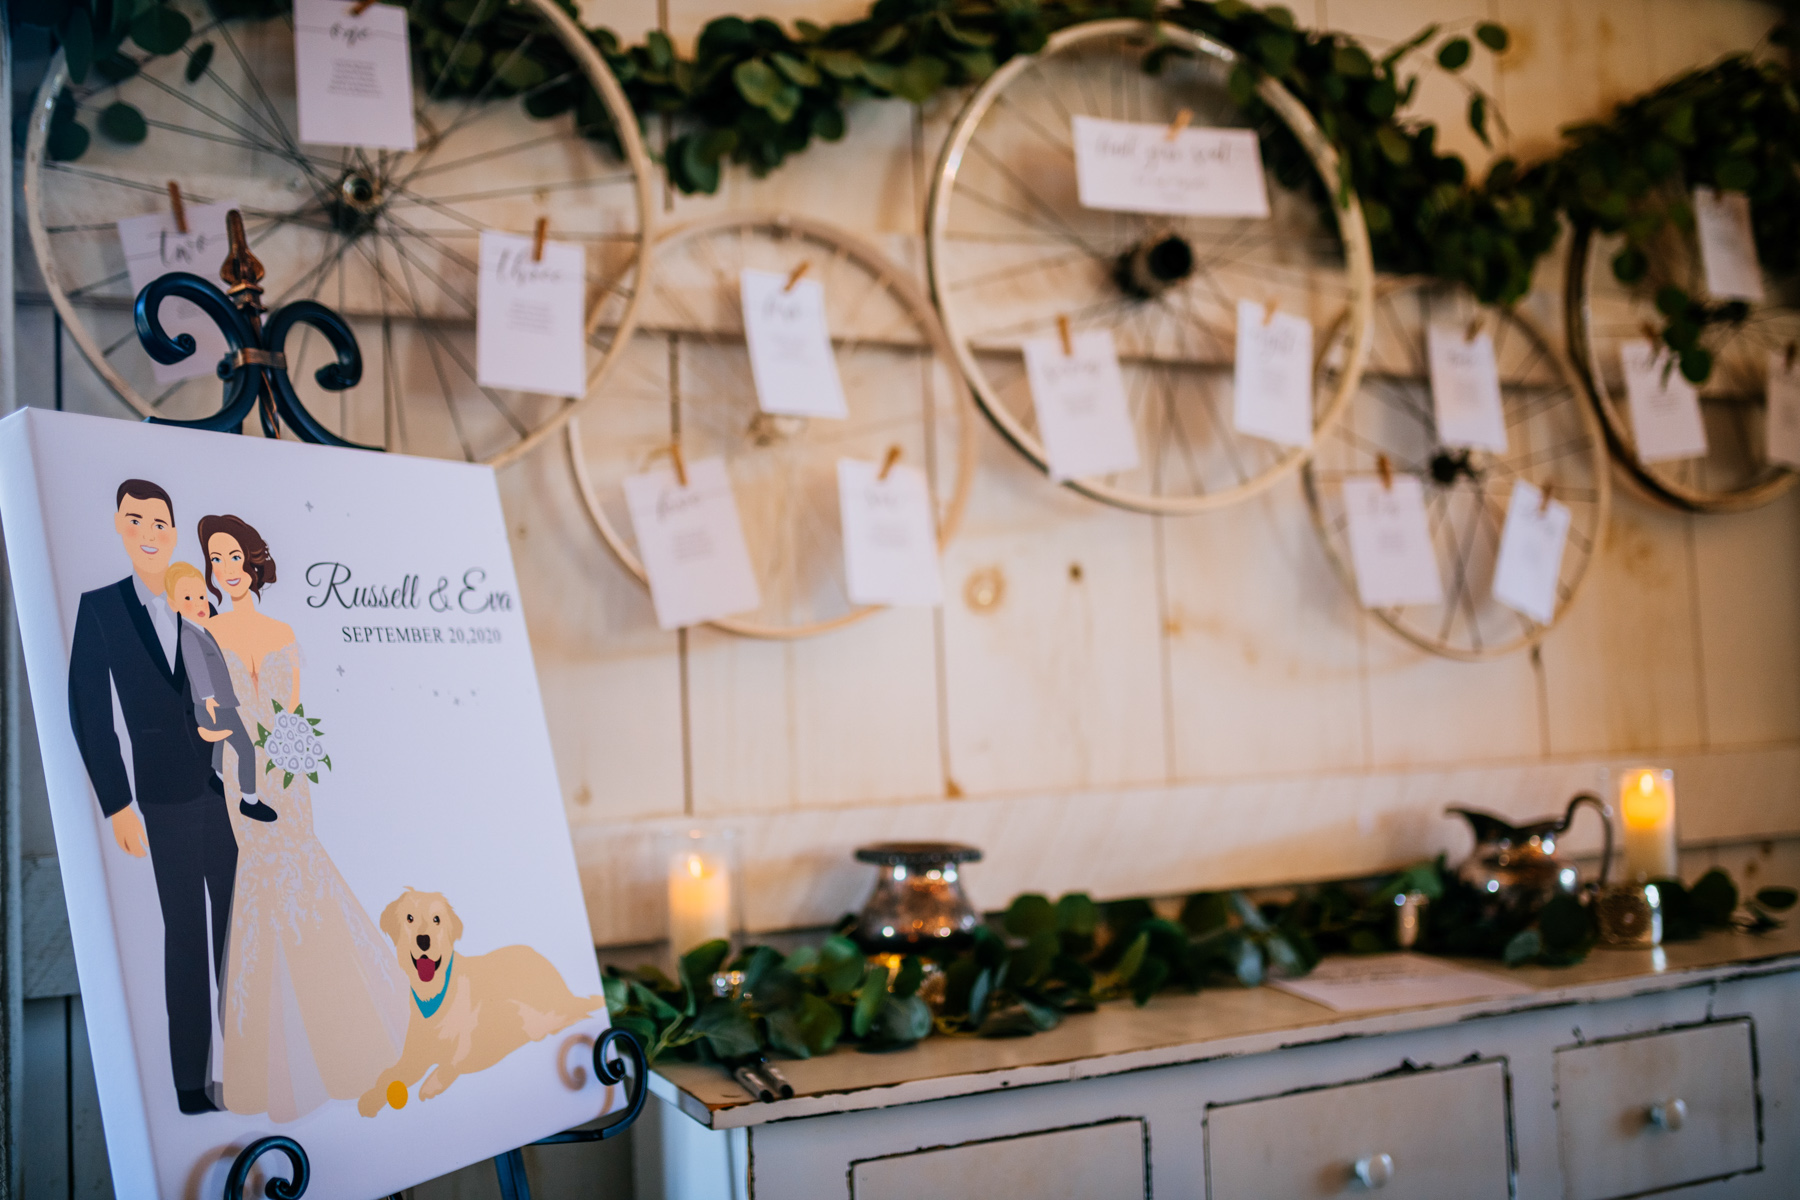 wedding place cards with old wagon wheels